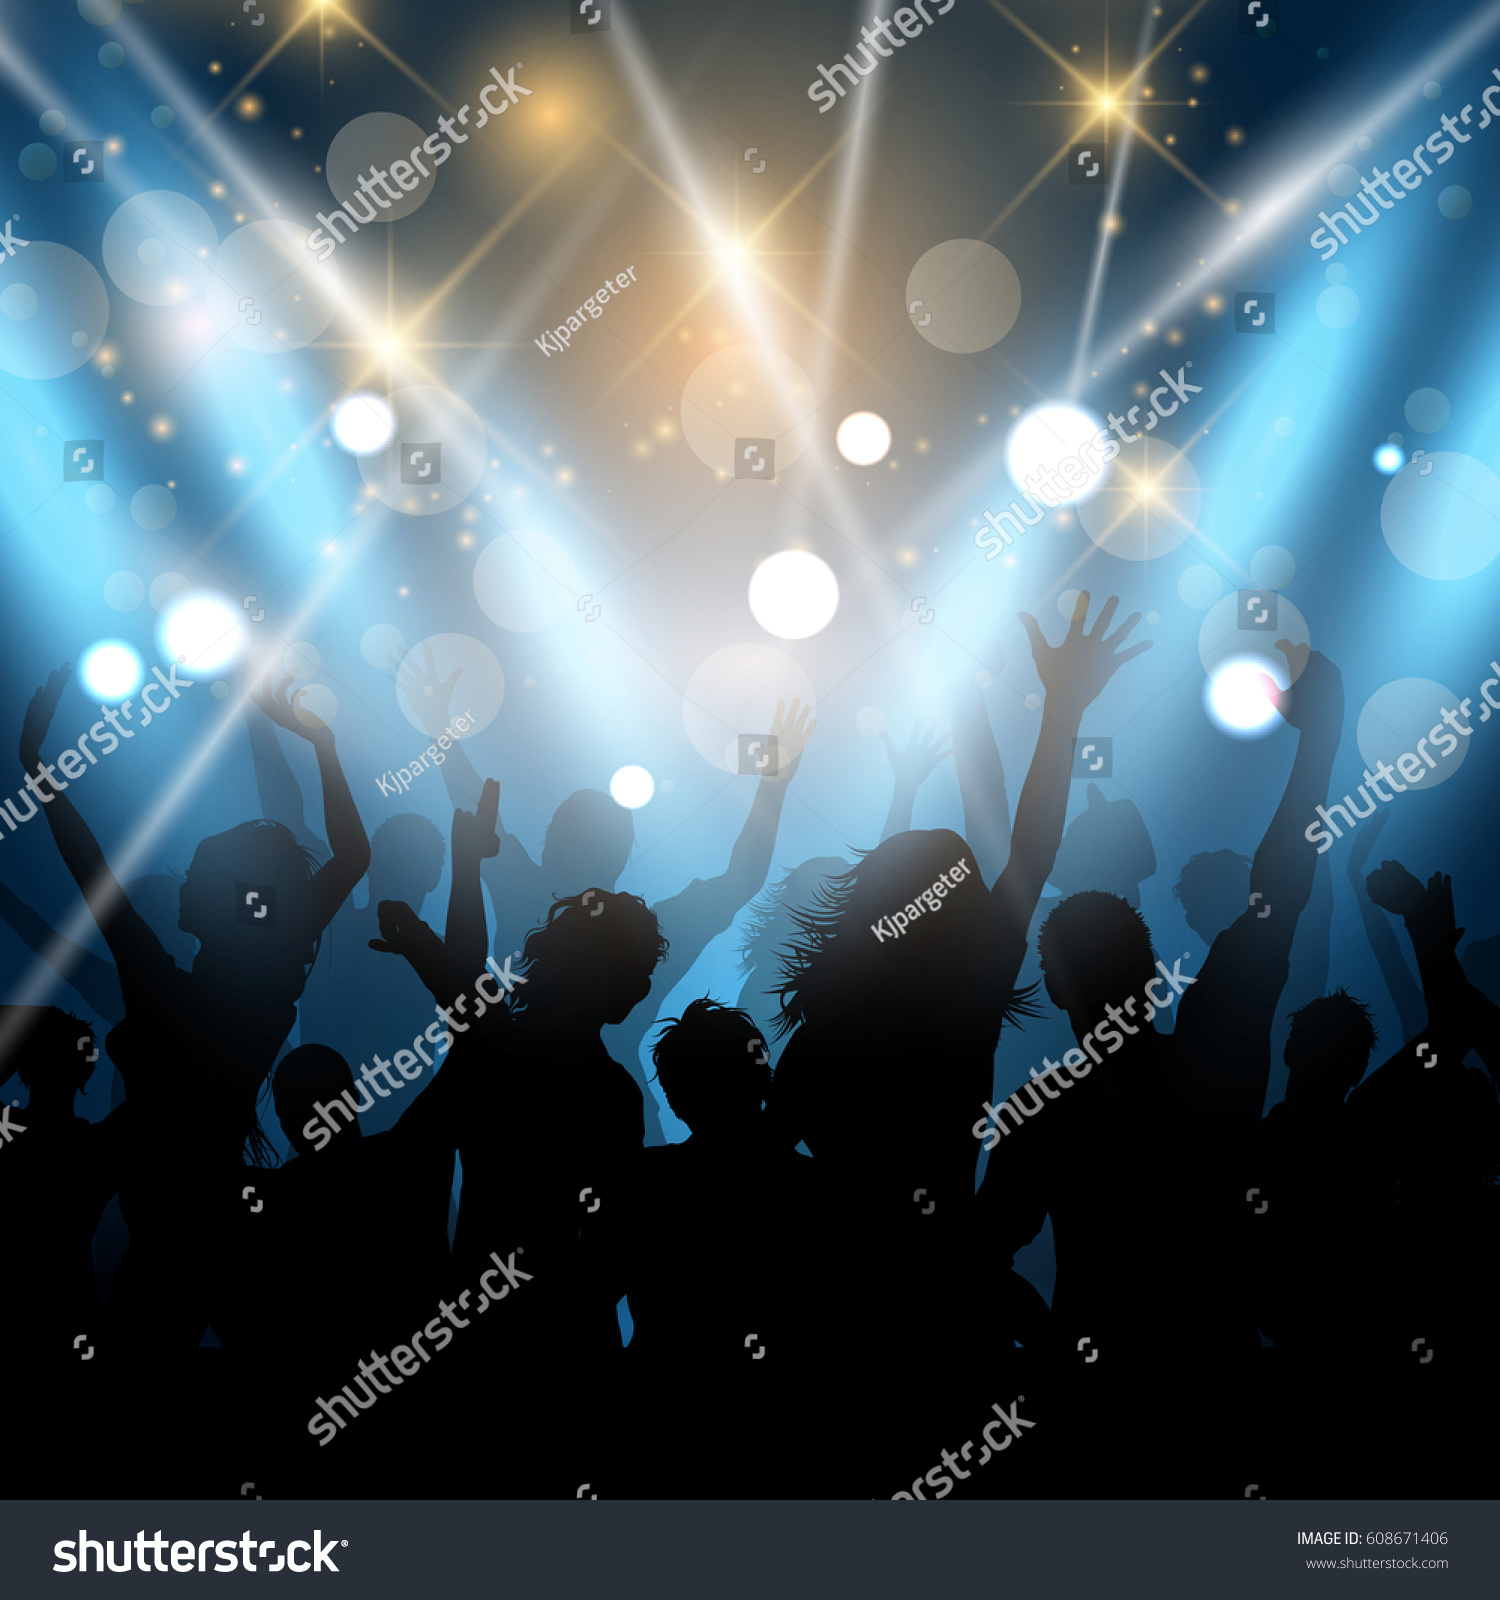 Silhouettes of party people on a spotlights background #608671406